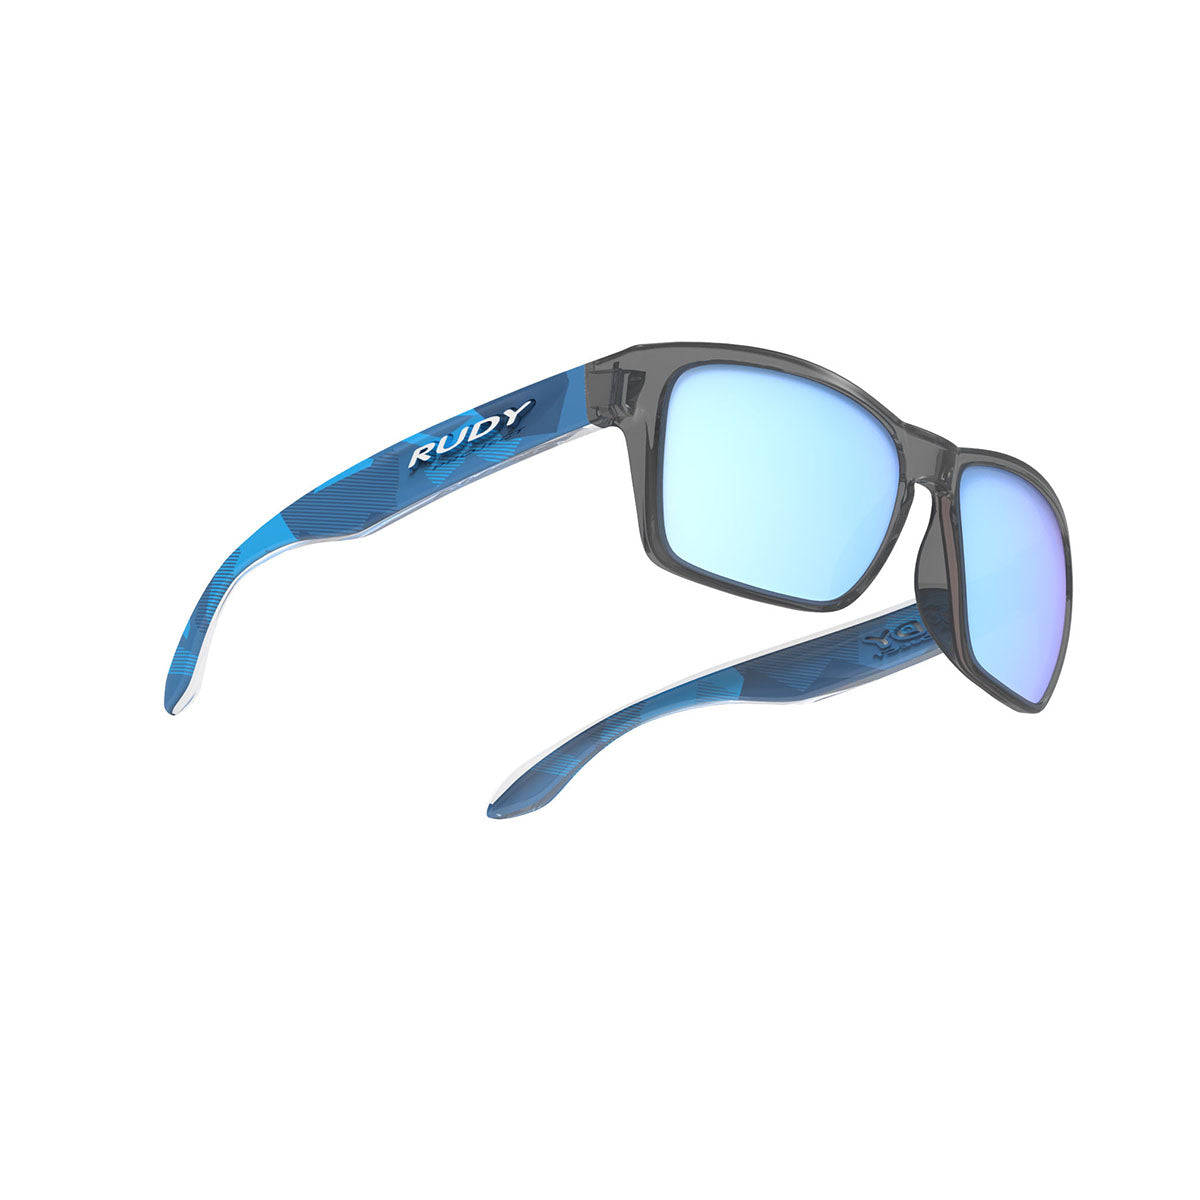 Rudy Project - Spinhawk Slim - frame color: Neo Camo Crystal Blue - lens color: Multilaser Ice - Bumper Color:  - photo angle: Bottom Front Angle Variant Hover Image